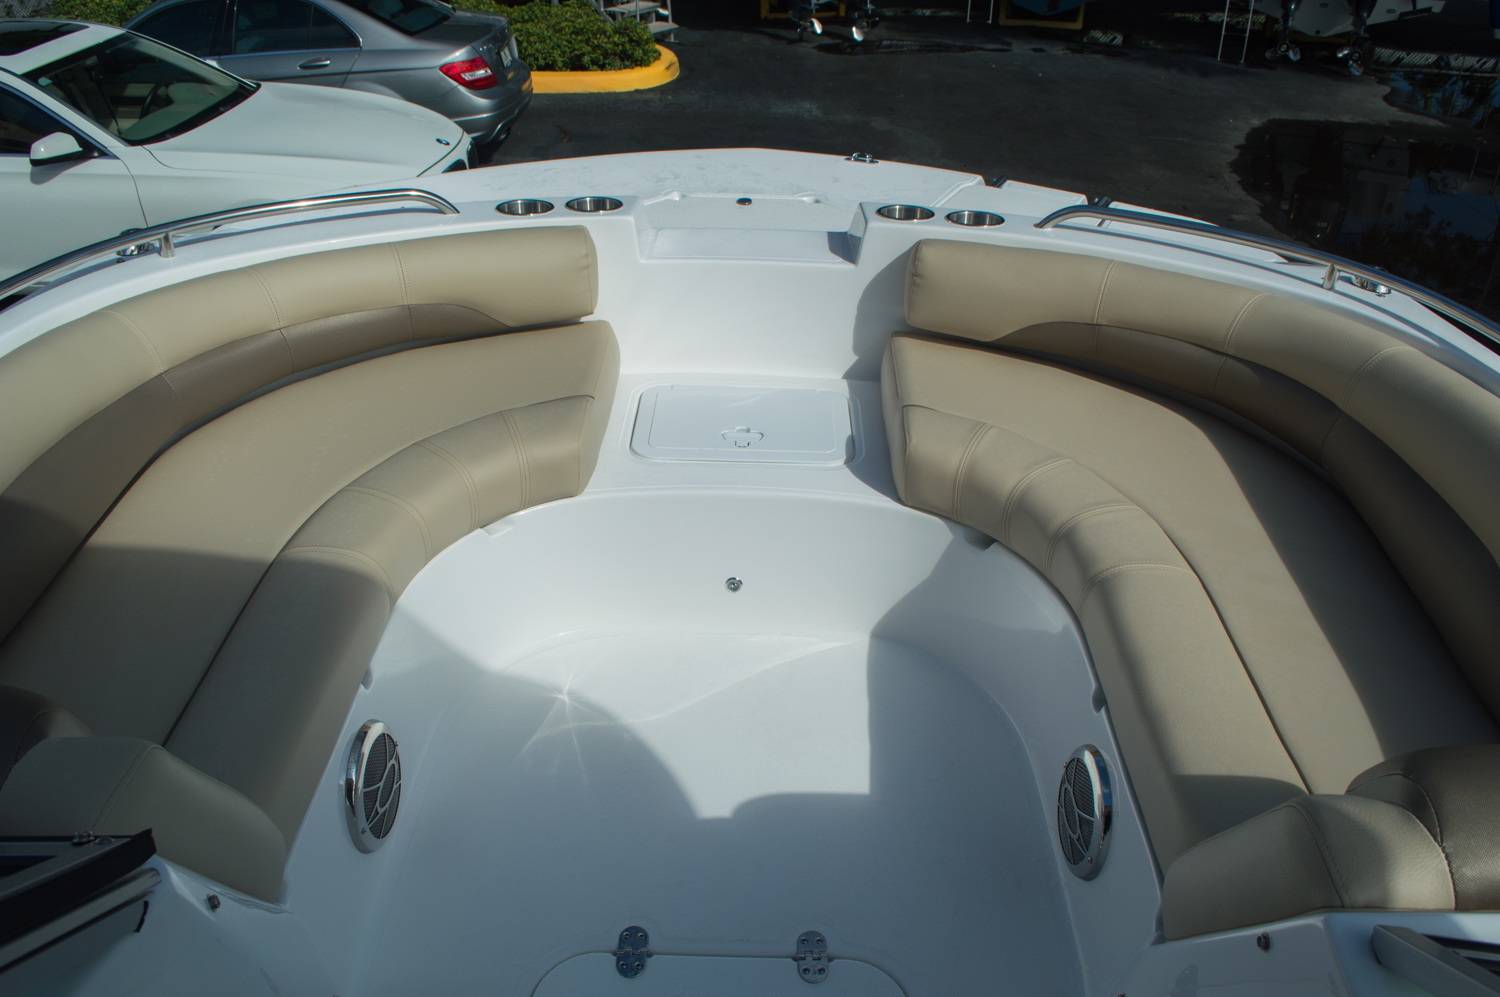 Thumbnail 11 for New 2016 Hurricane SunDeck SD 187 OB boat for sale in West Palm Beach, FL